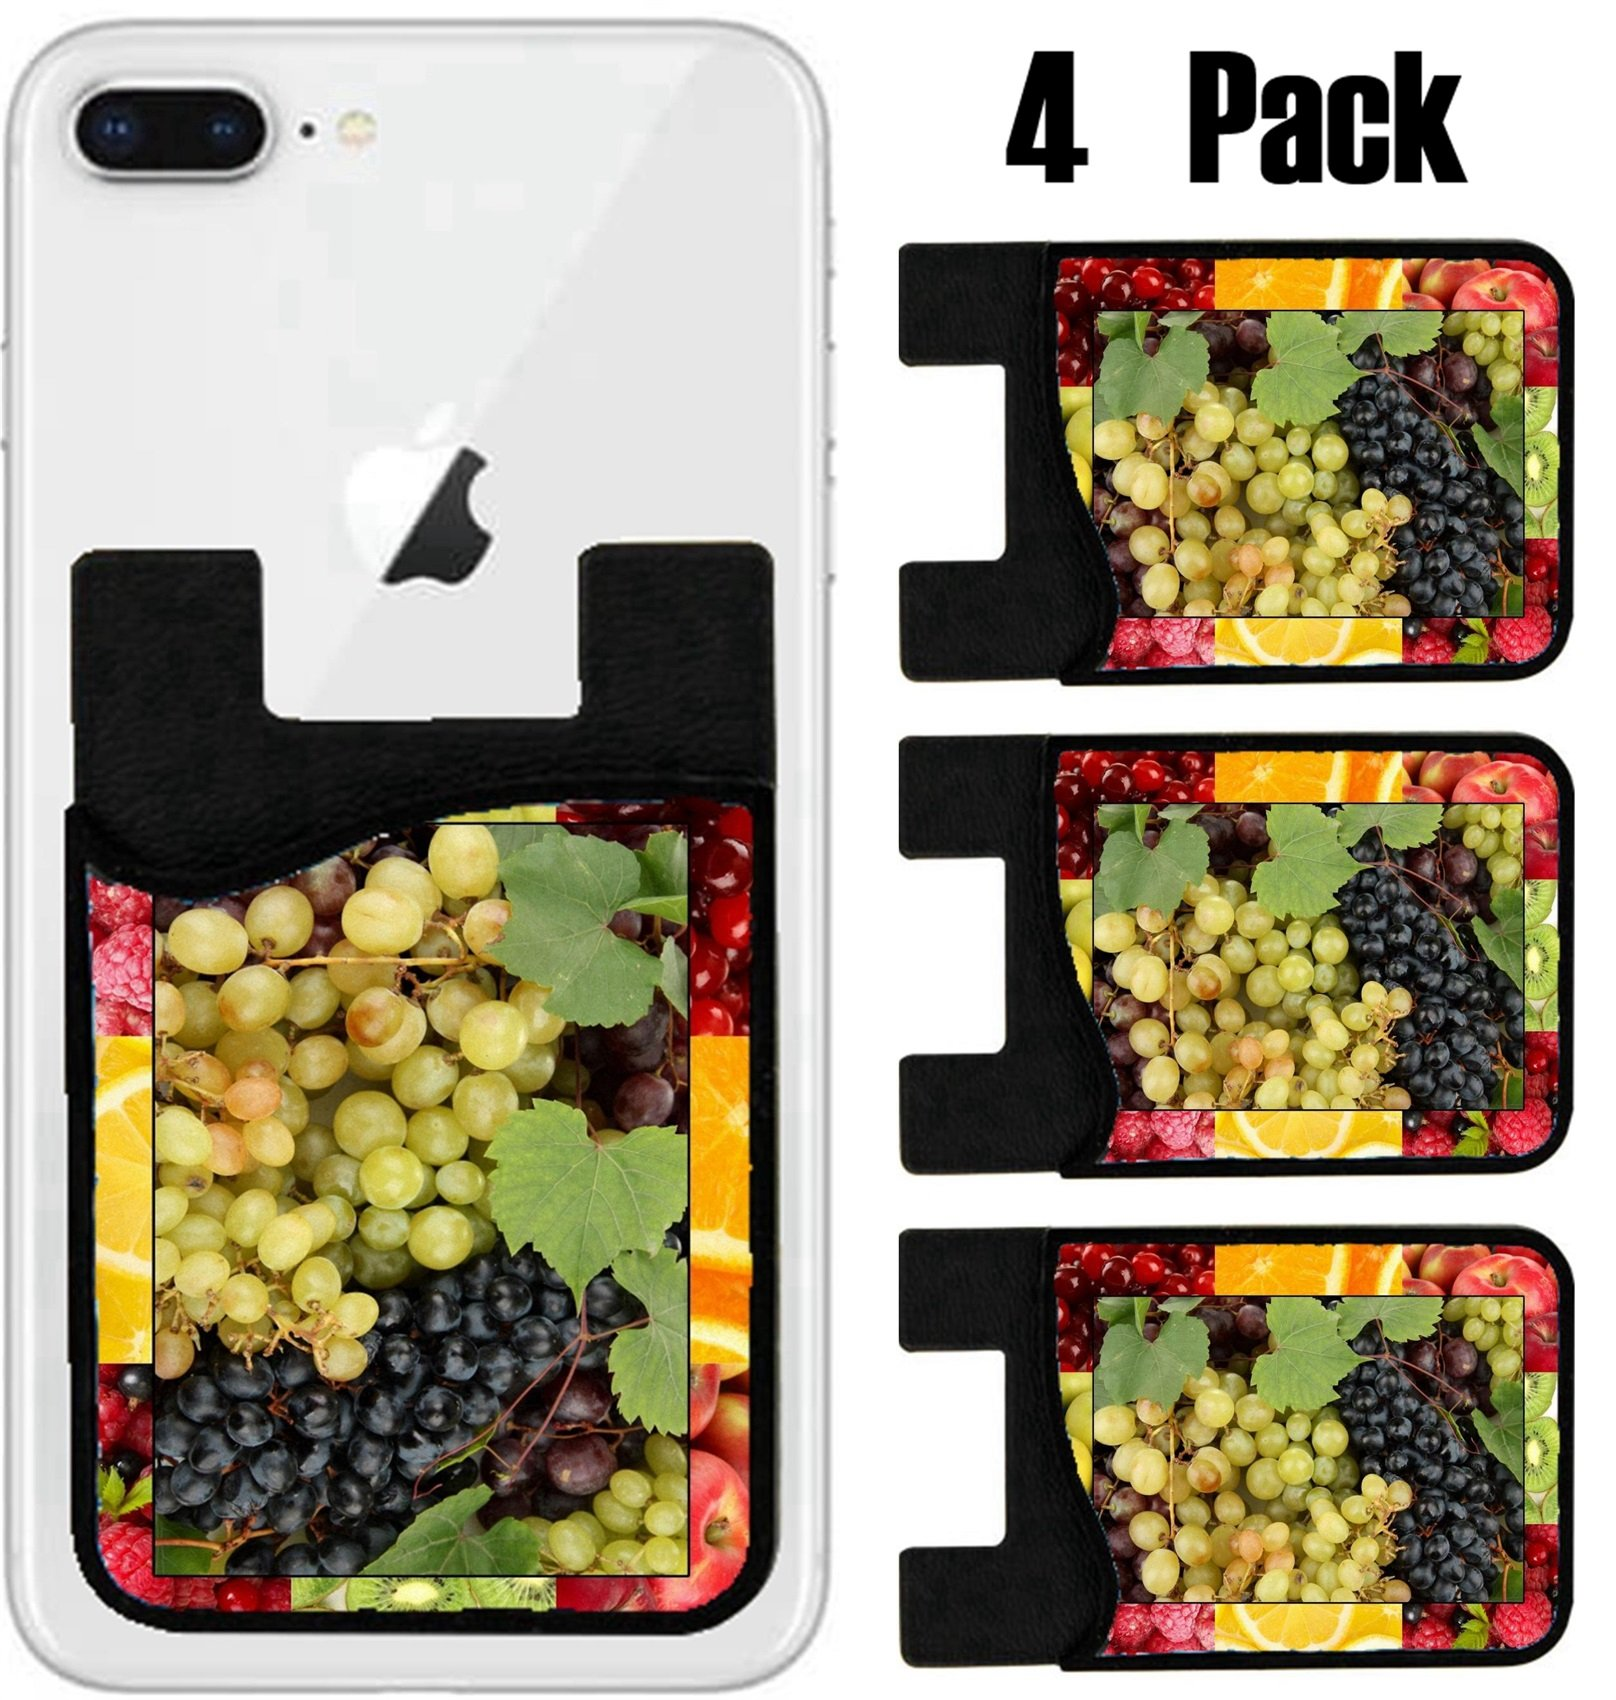 MSD Phone Card holder sleeve wallet for iPhone Samsung Android and all smartphones with removable microfiber screen cleaner Silicone card Caddy(4 Pack) IMAGE ID 20649531 Colorful healthy fruit collag